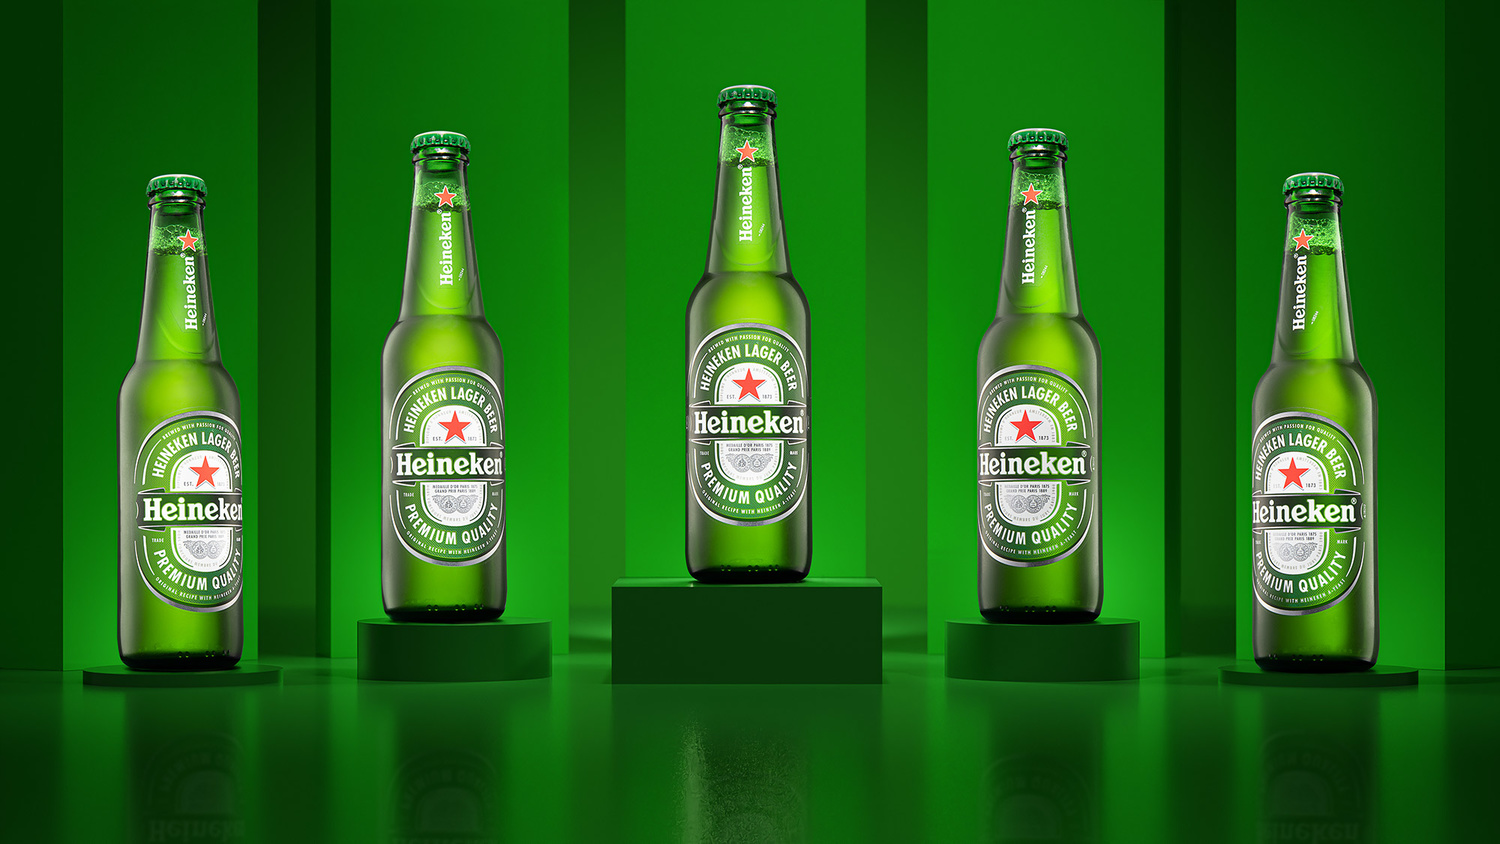 The only competition, is Heineken. by Ethan Davis